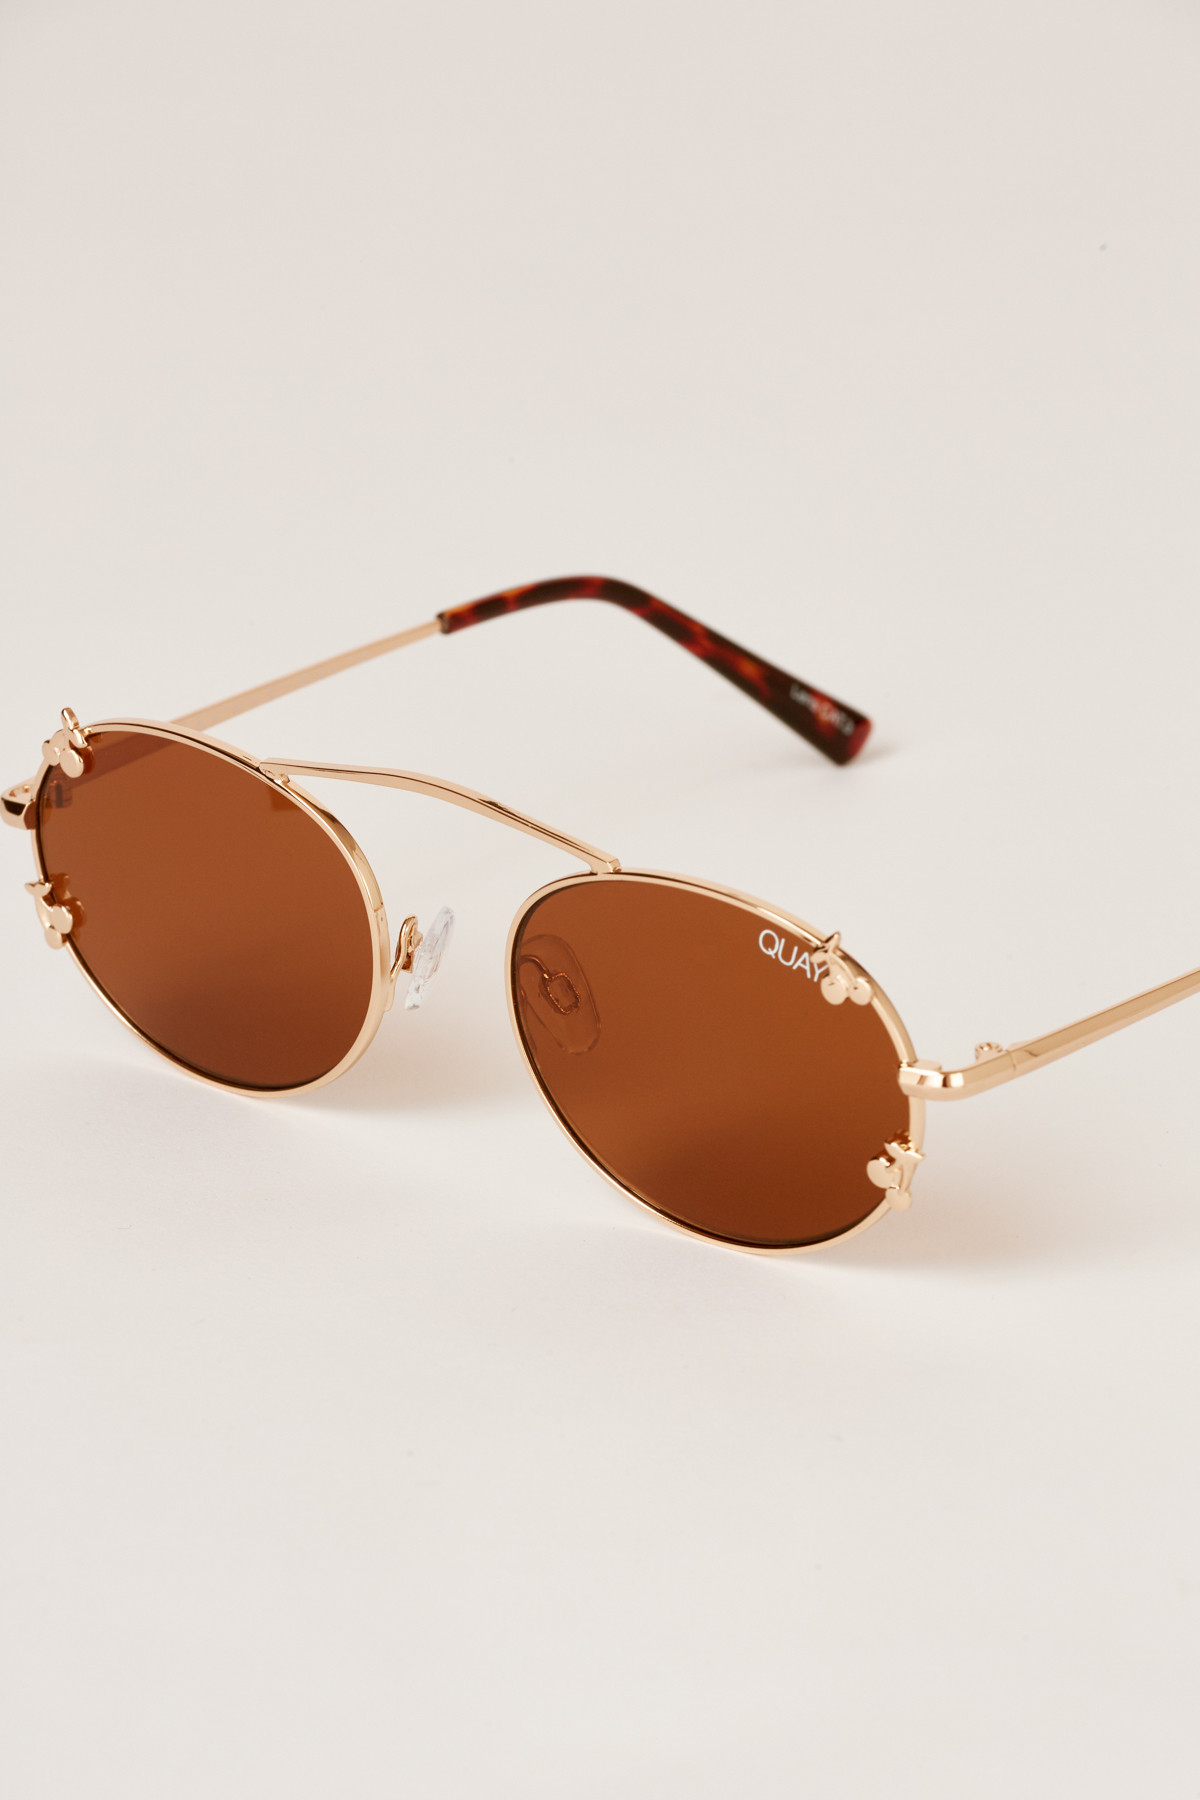 Shop QUAY X Finders Keepers Final Stand sunglasses.